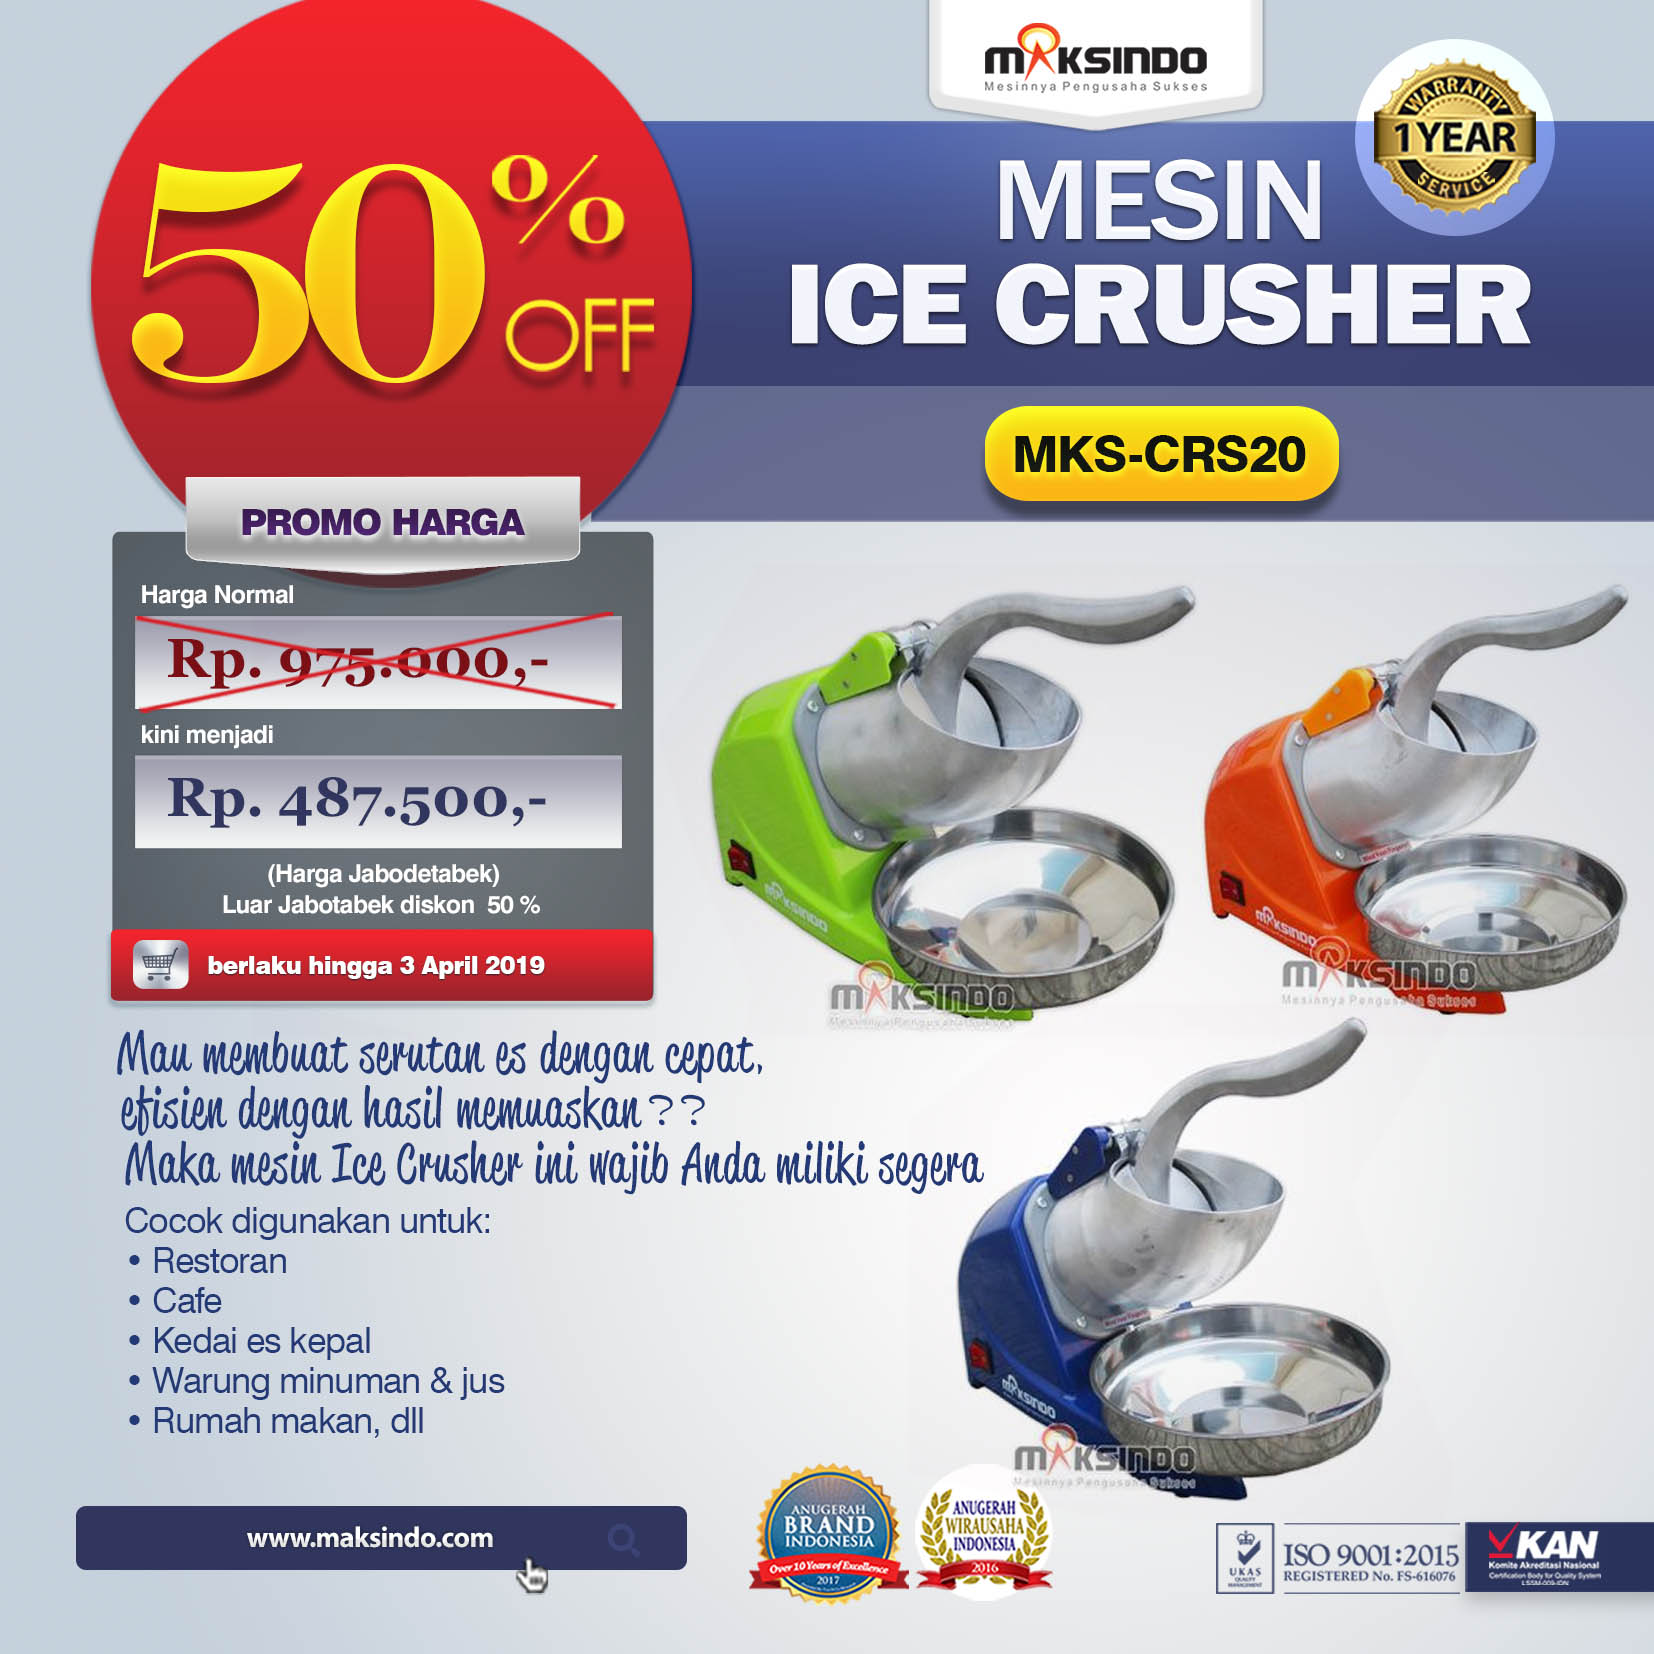 MKS-CRS20 Mesin Ice Crusher